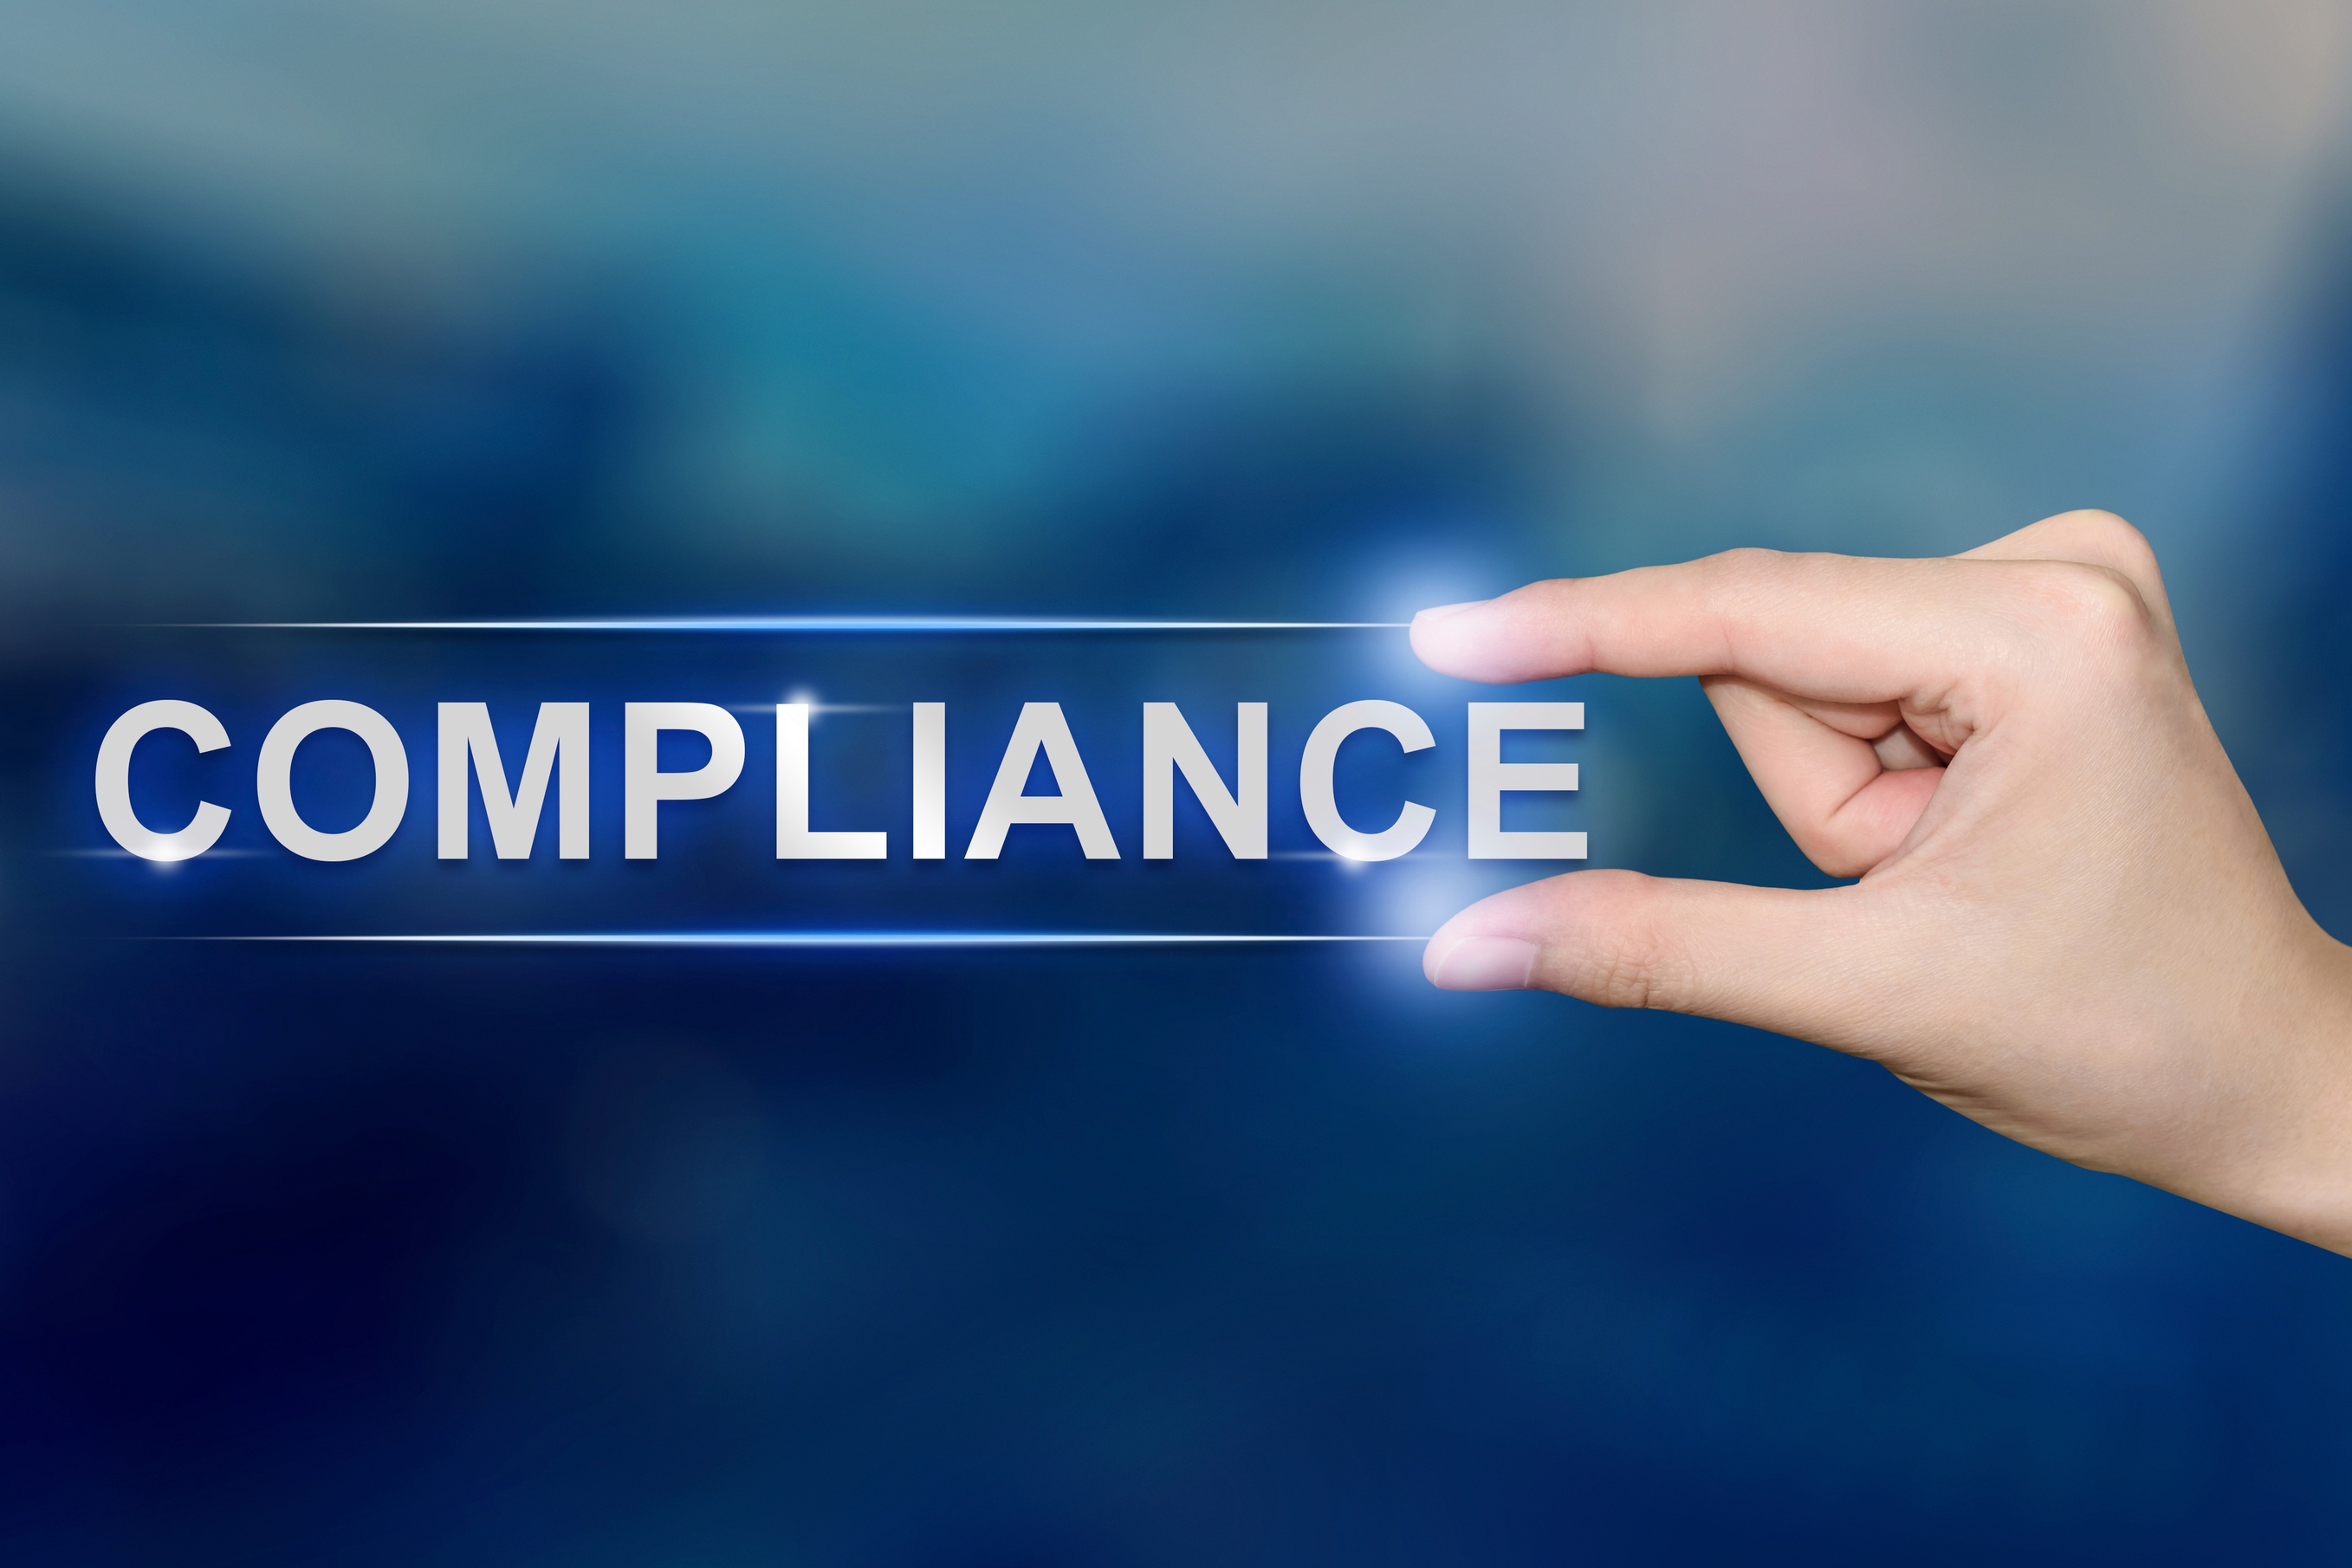 Compliance. Are you giving up yourself?